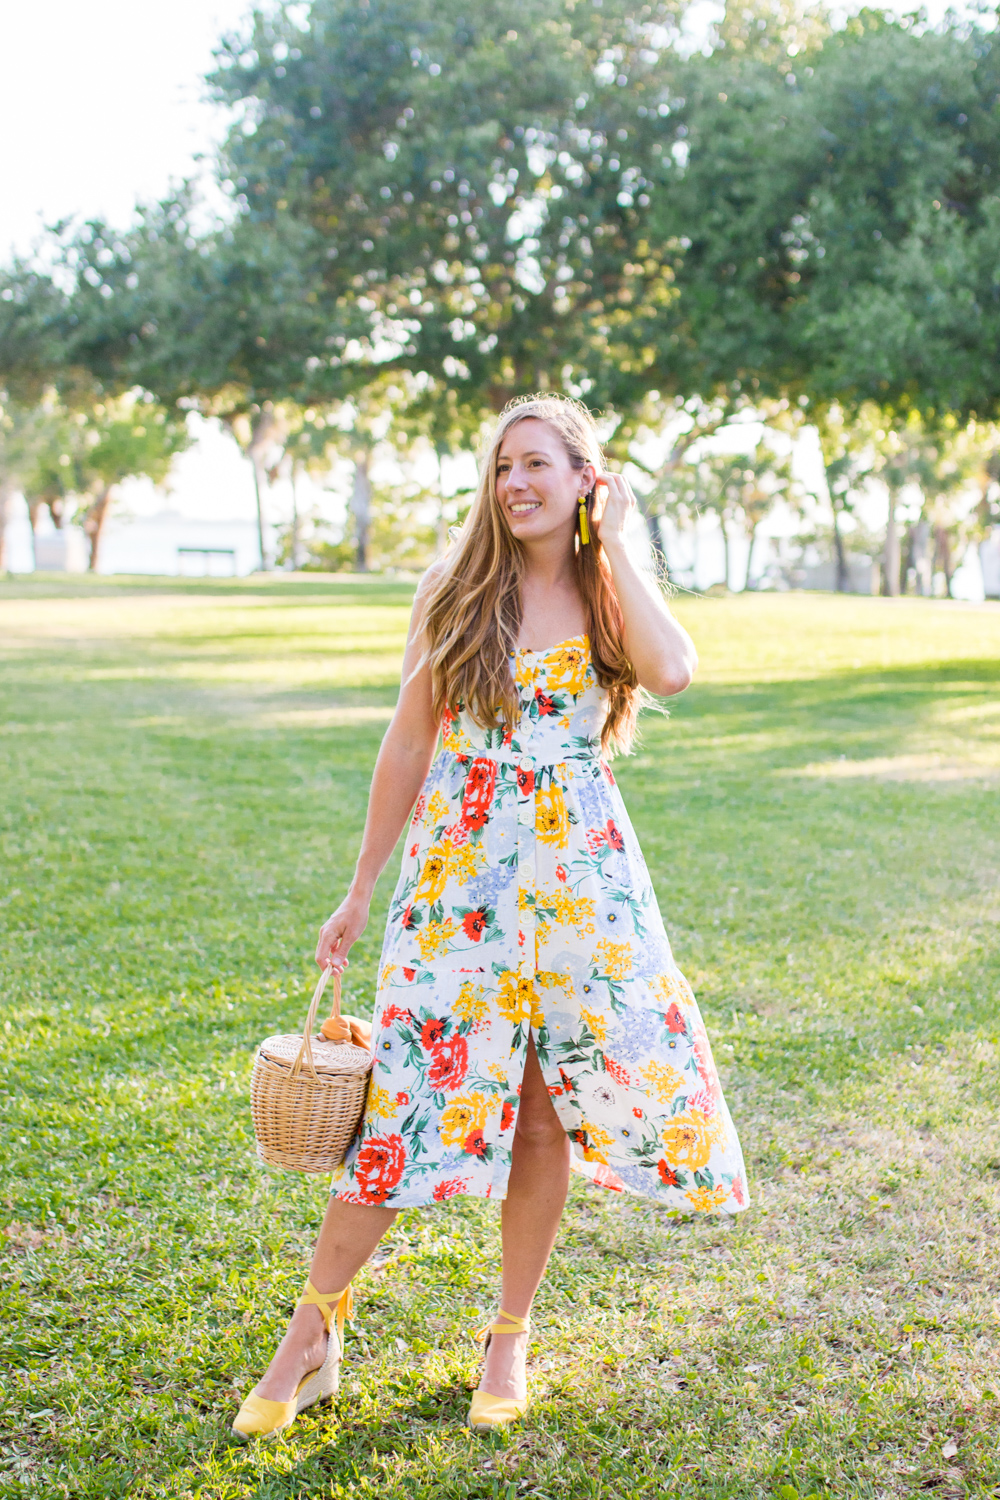 Floral Midi Dress for Summer - Sunshine Style